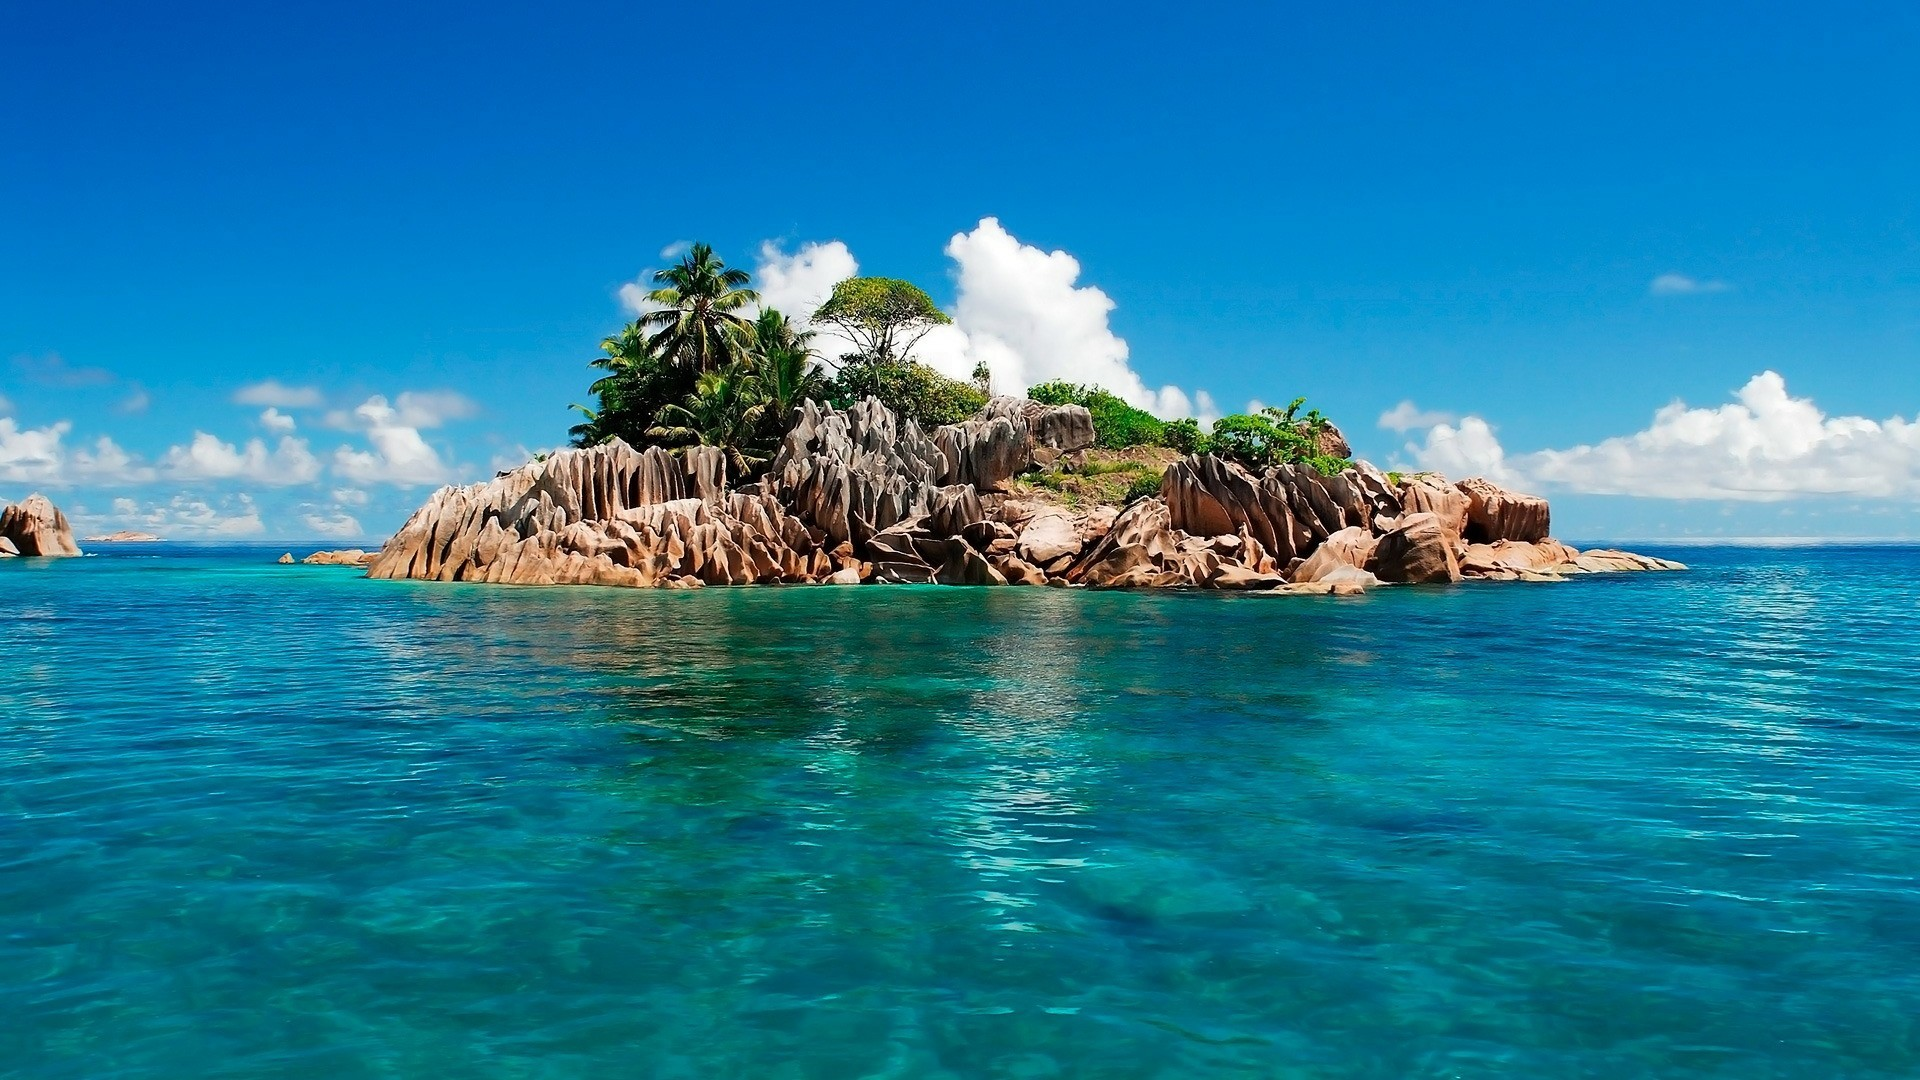 Res: 1920x1080, St. Pierre Island (Seychelles) Wallpaper | Wallpaper Studio 10 | Tens of  thousands HD and UltraHD wallpapers for Android, Windows and Xbox